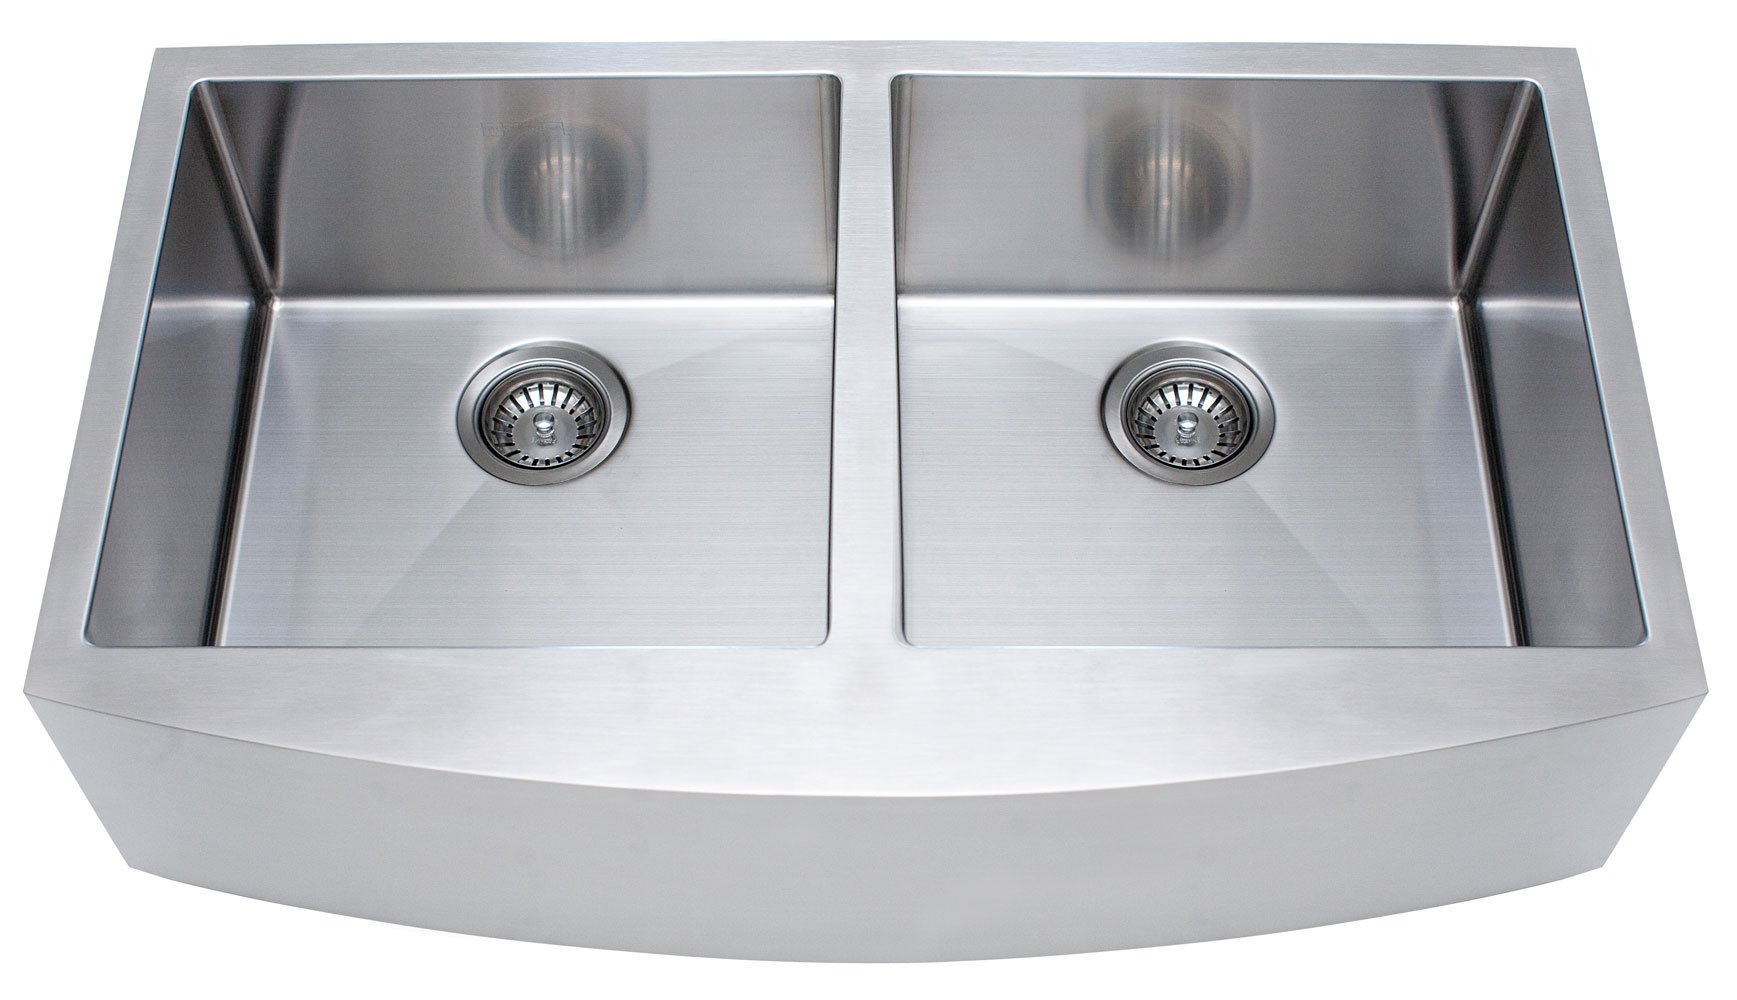 Franke Kinetic 33'' Apron Front Farm House Double Bowl Kitchen Sink, Stainless Steel by FrankeUSA